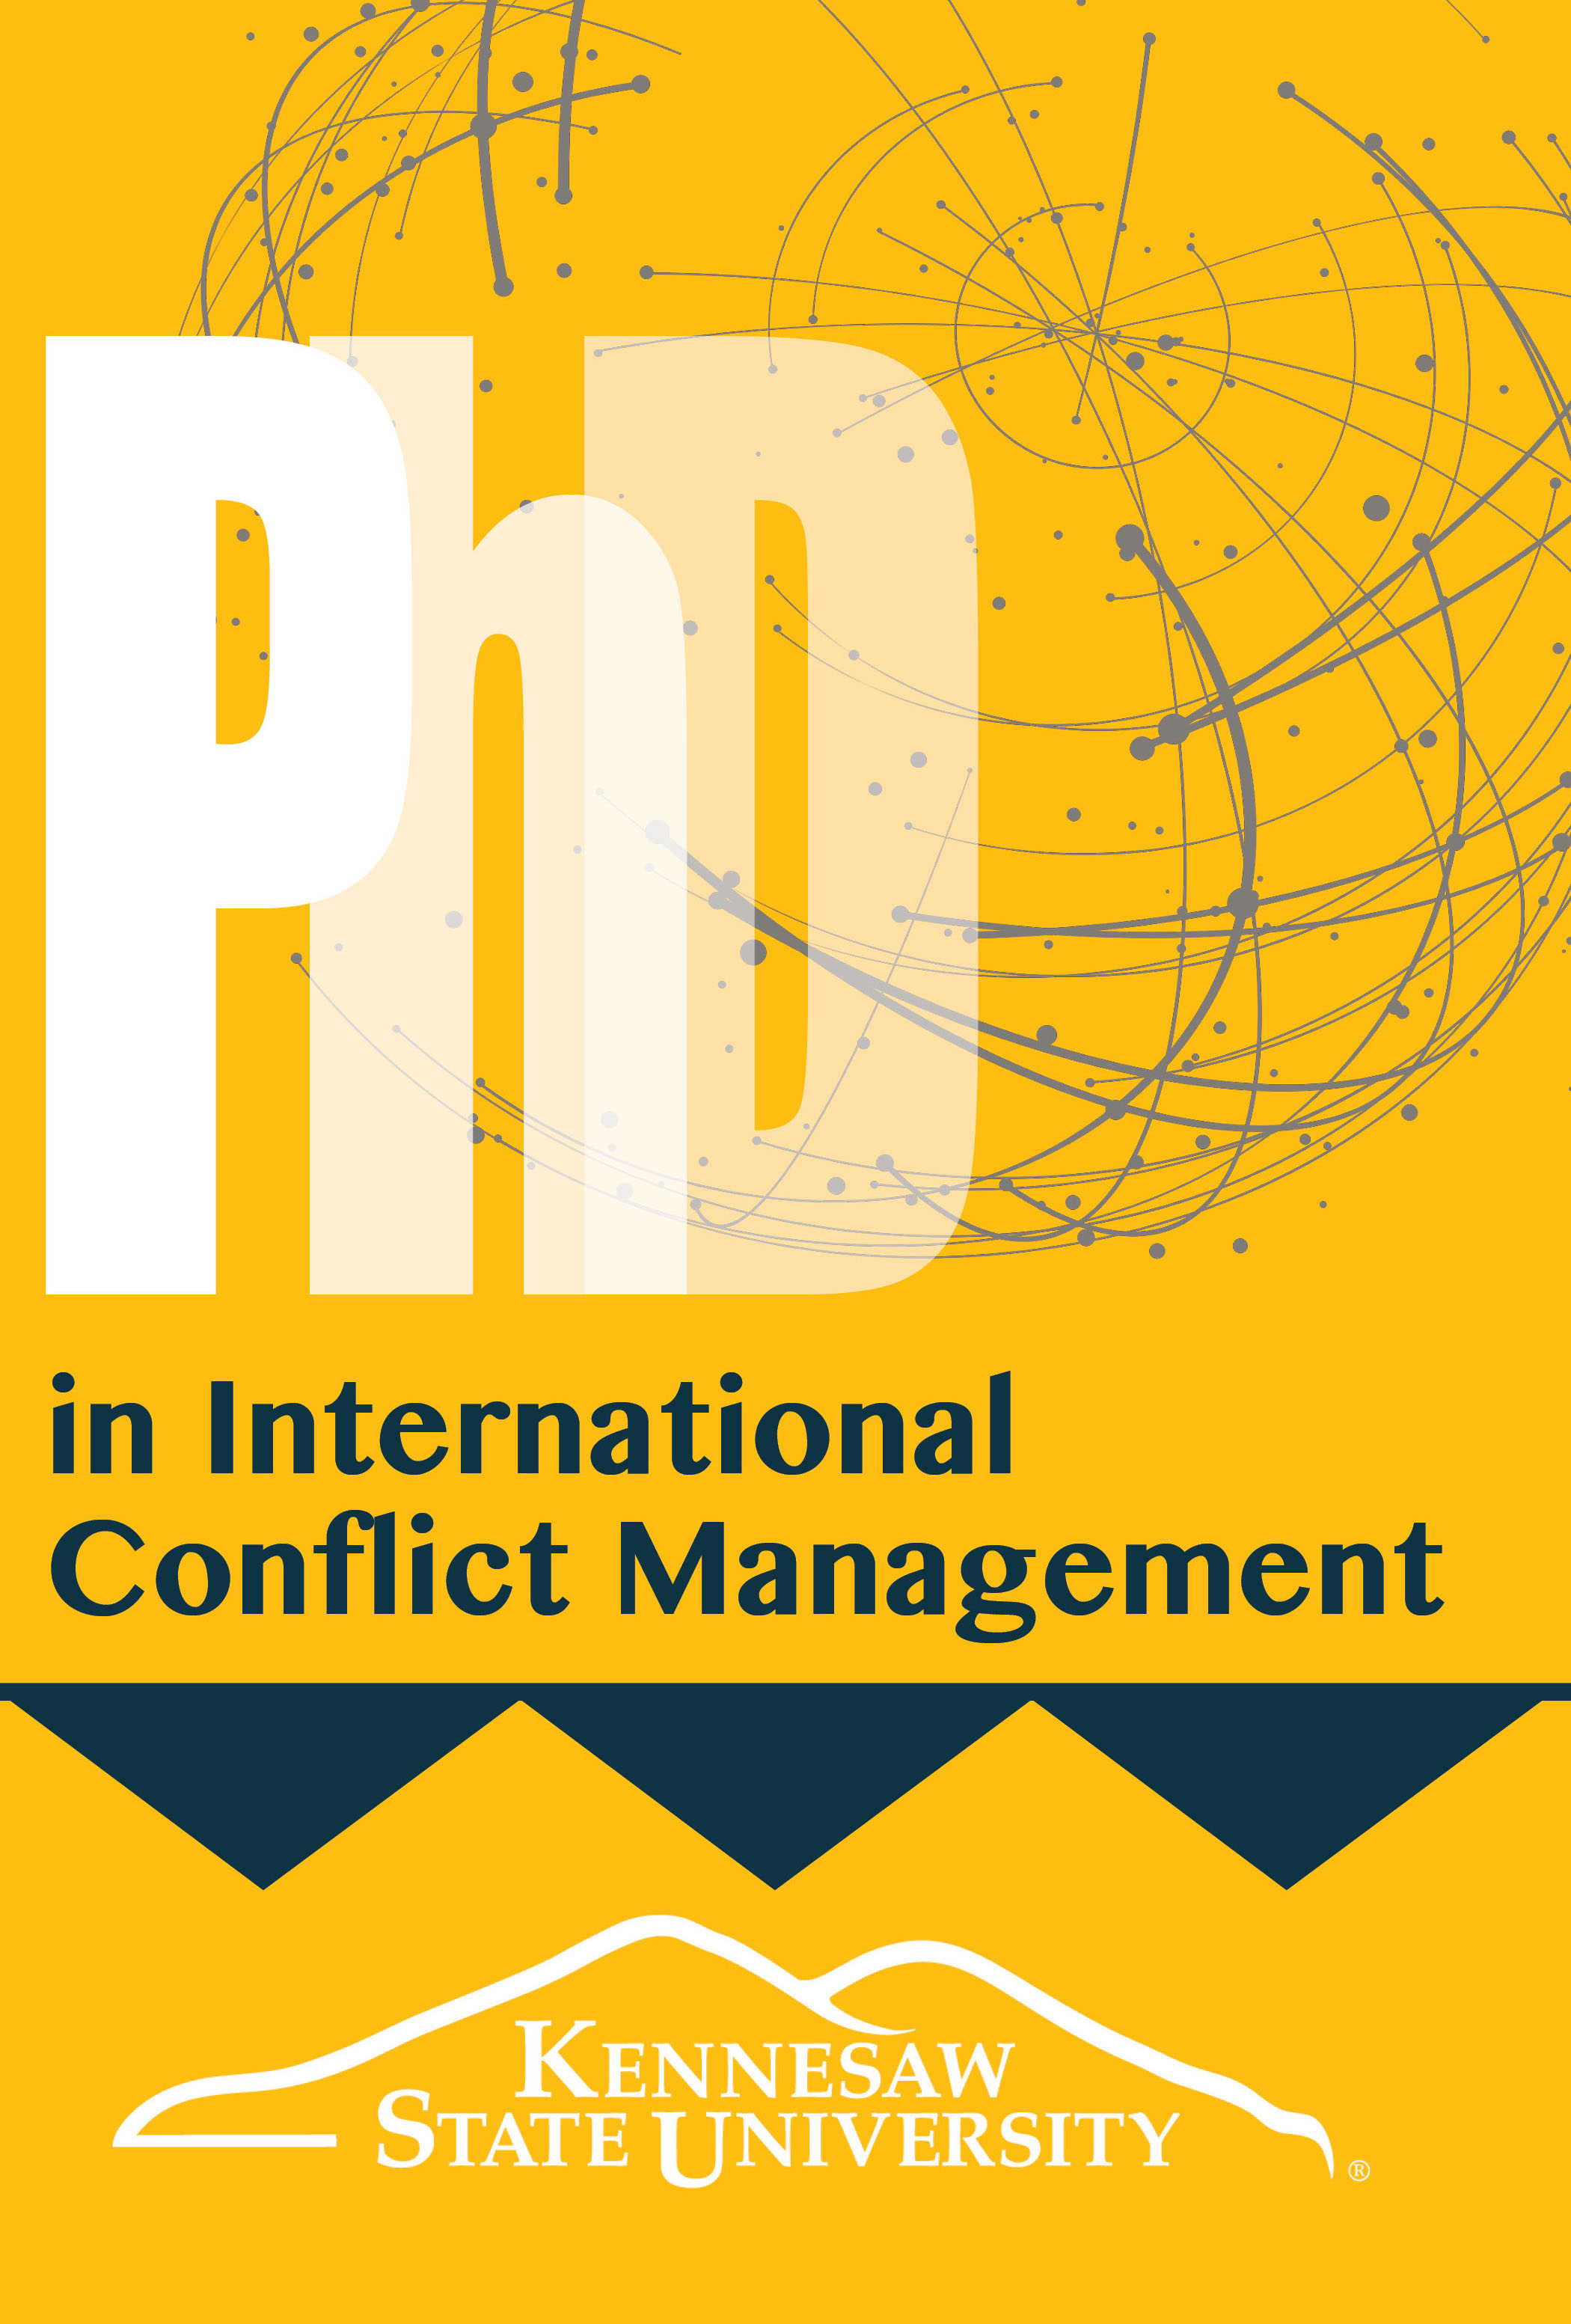 phd conflict management brochure front